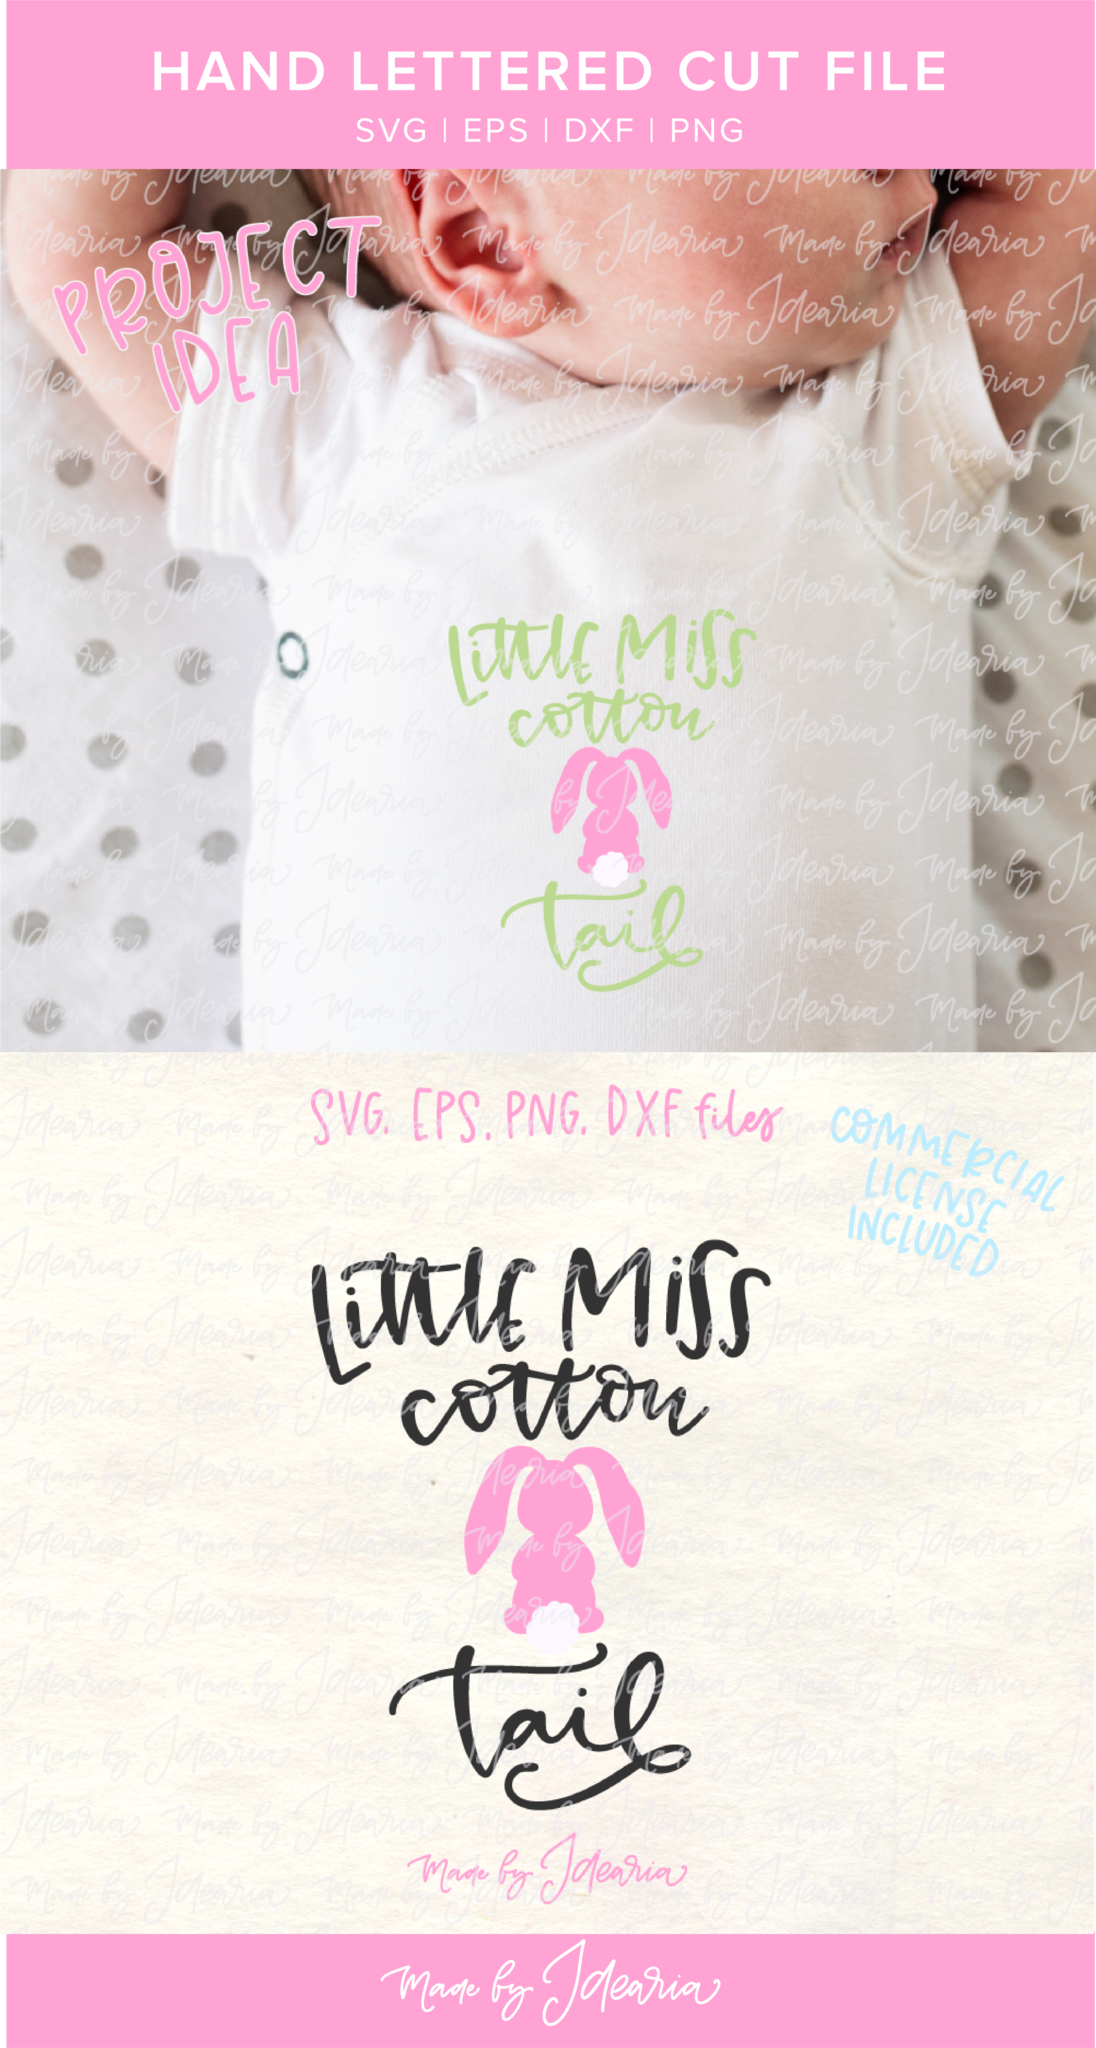 Little miss cotton tail svg file pinterest this cute girl svg file featuring a saying little miss cotton tail and a bunny would negle Images